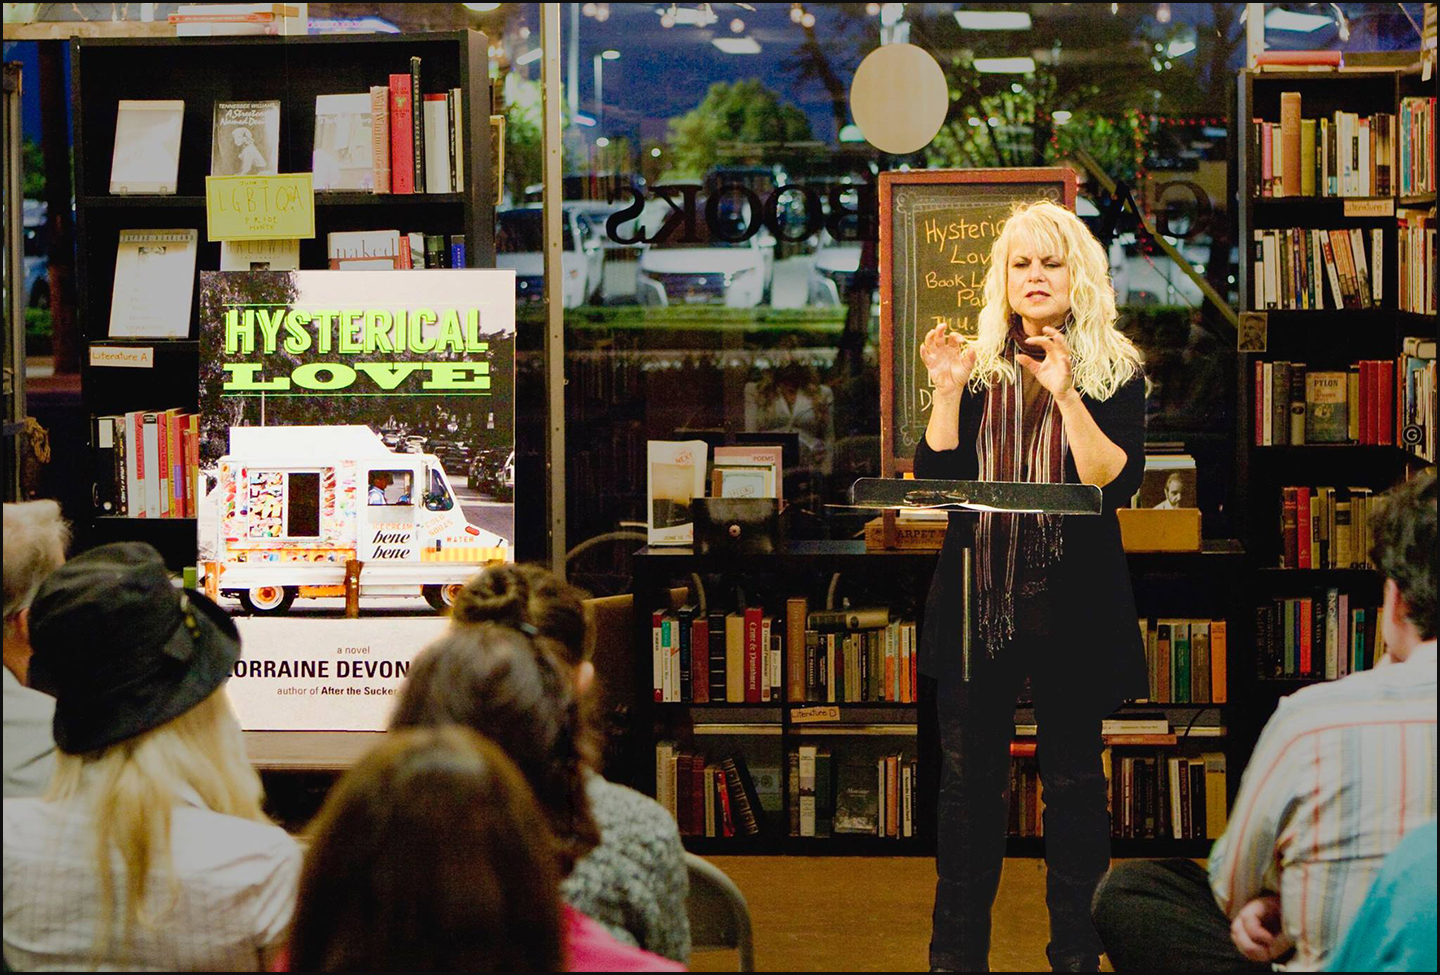 Lorraine explains it all_book reading_Hysterical Love